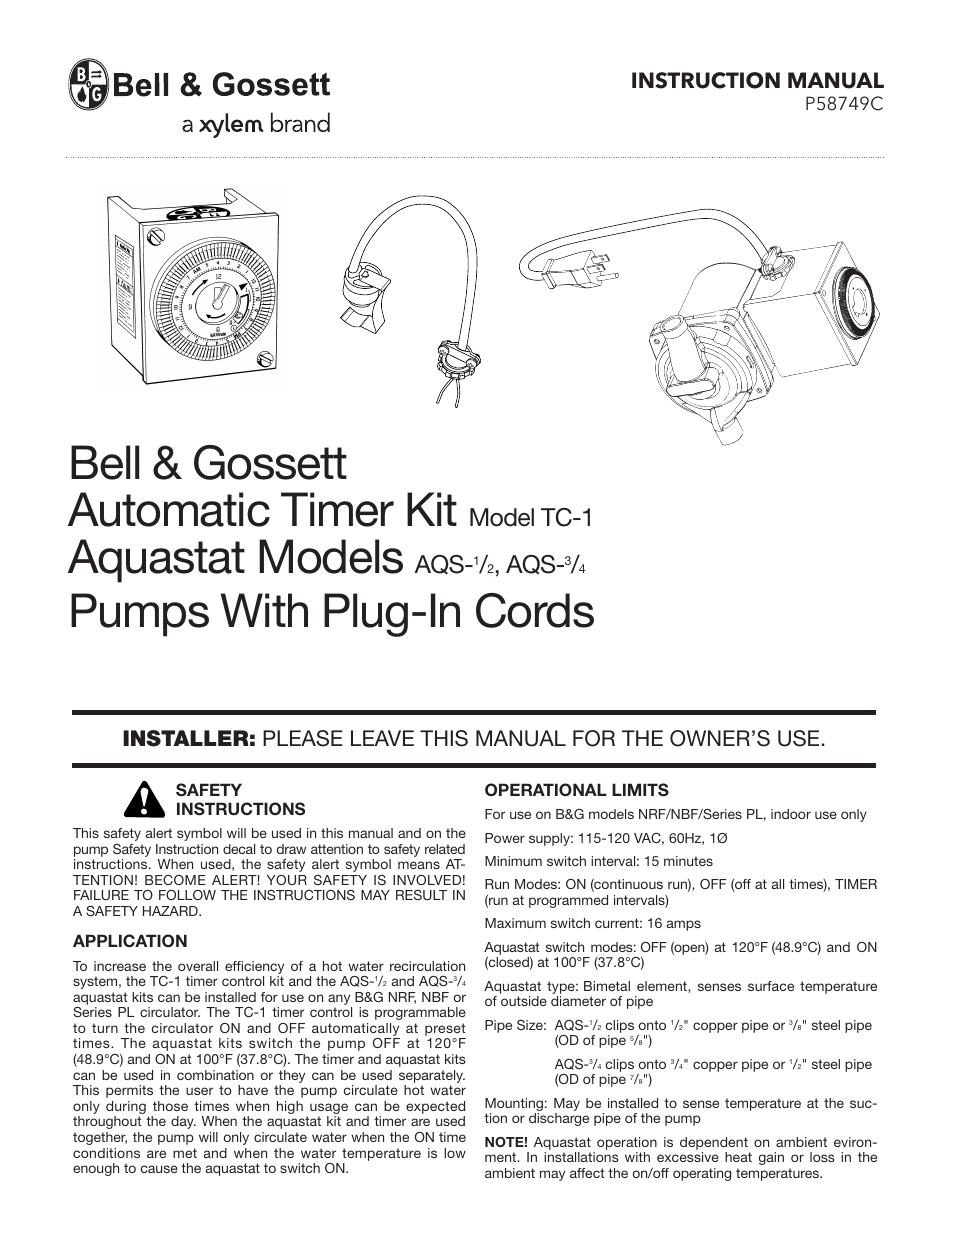 bell gossett p58749c aqs 3 4 aquastat user manual 4 pages bell gossett p58749c aqs 3 4 aquastat user manual 4 pages also for tc 1 automatic timer kit p58749c aqs 1 2 aquastat